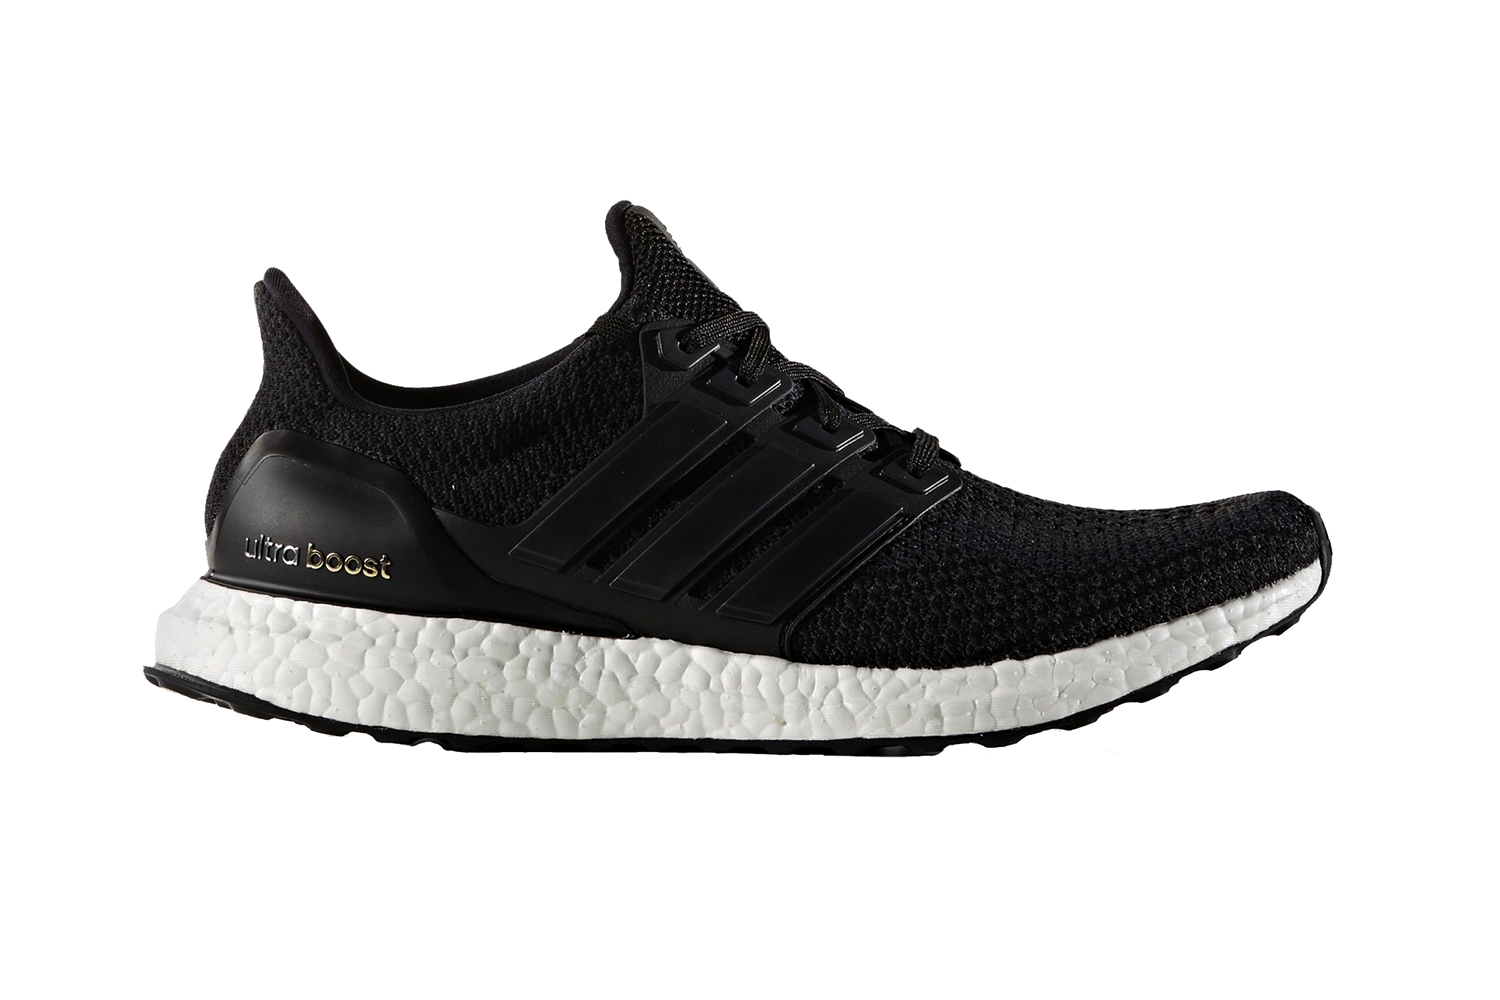 adidas ultra boost black 2 0. Black Bedroom Furniture Sets. Home Design Ideas